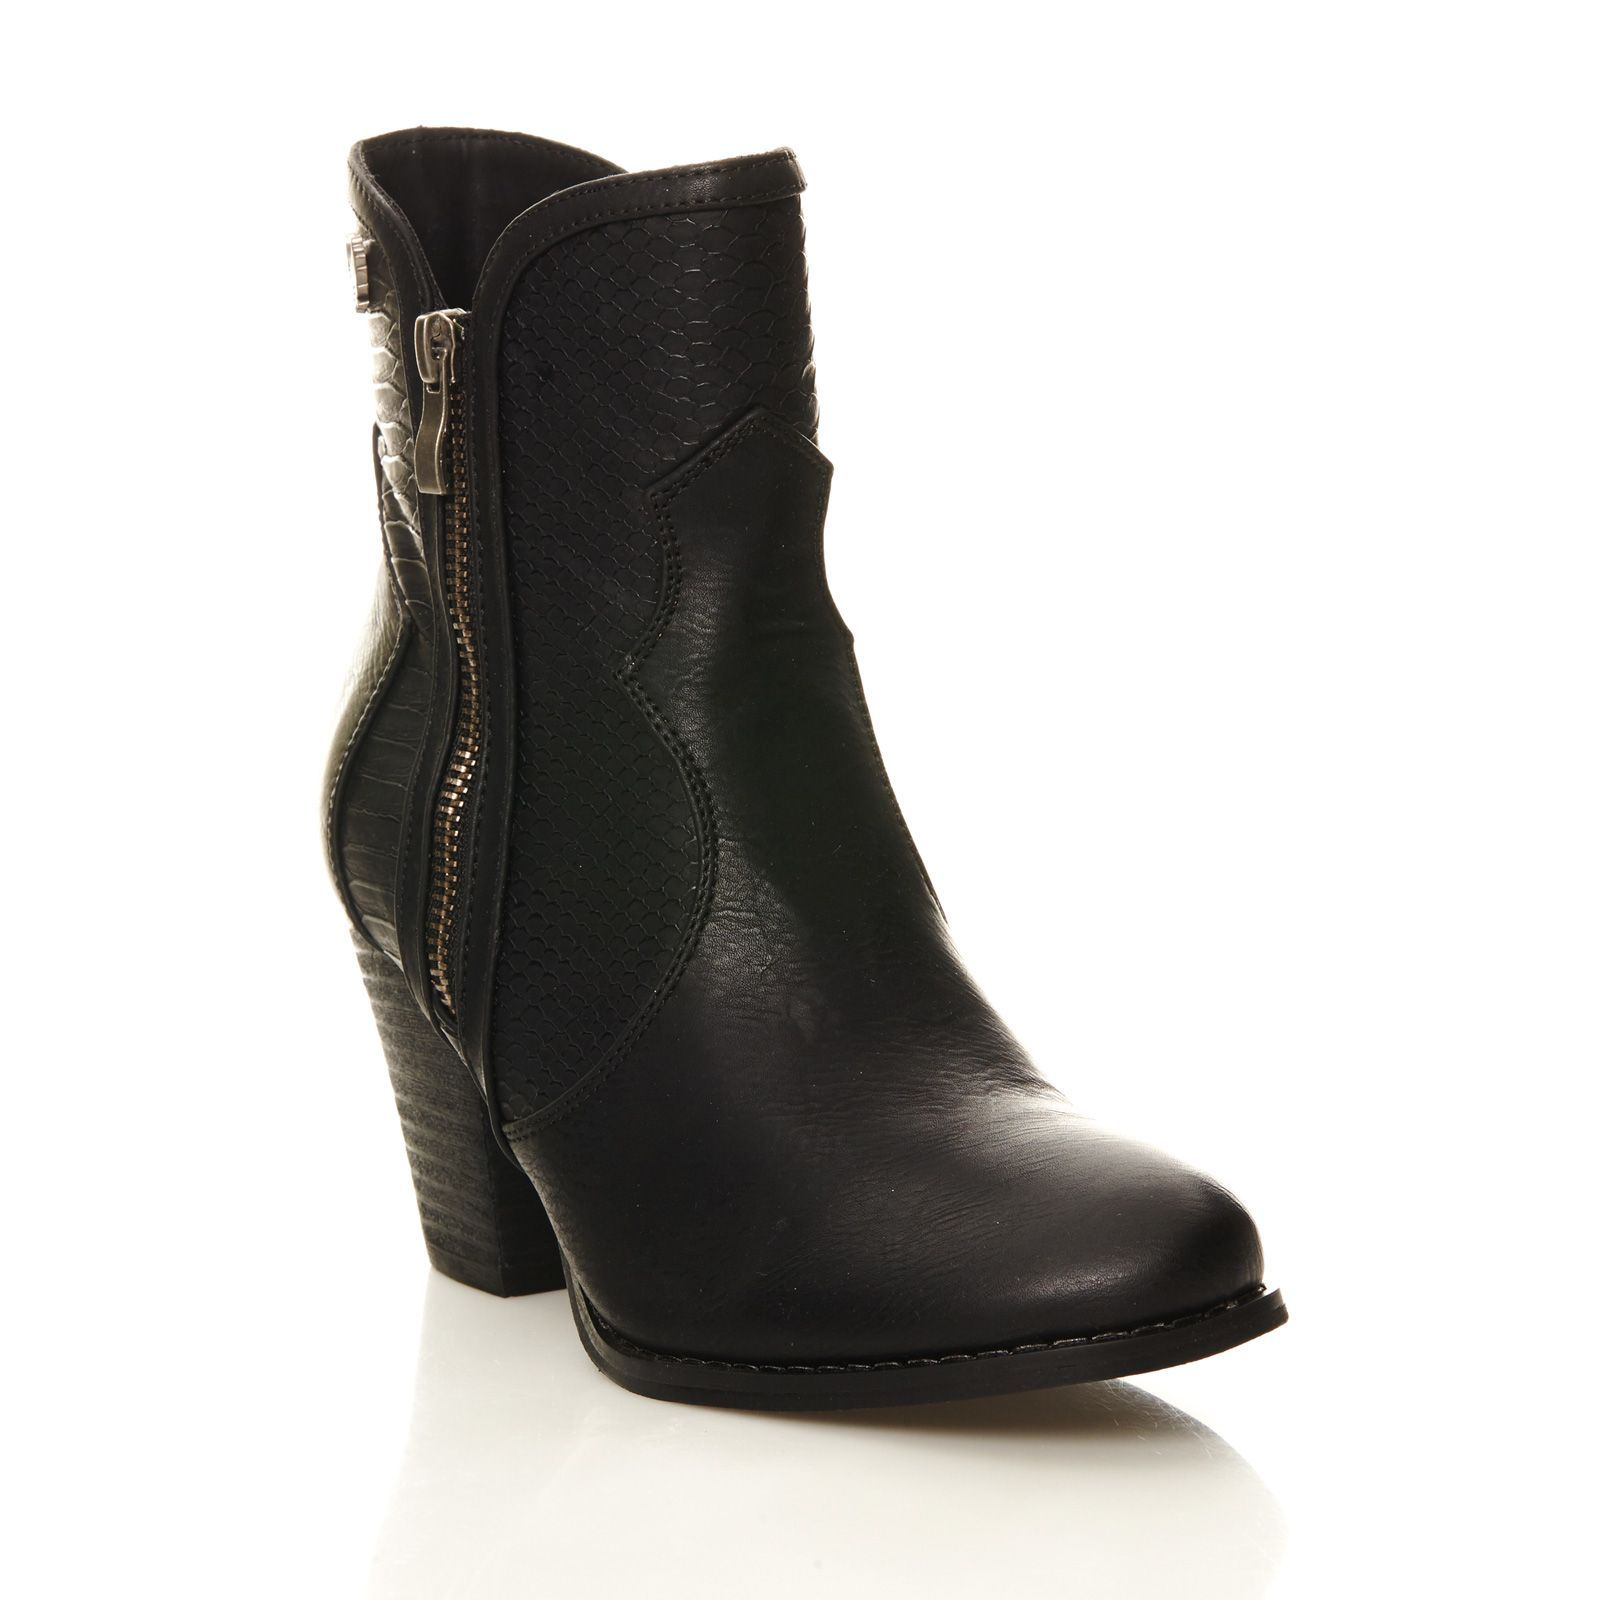 Kaporal Shoes Pim - Bottines - noir